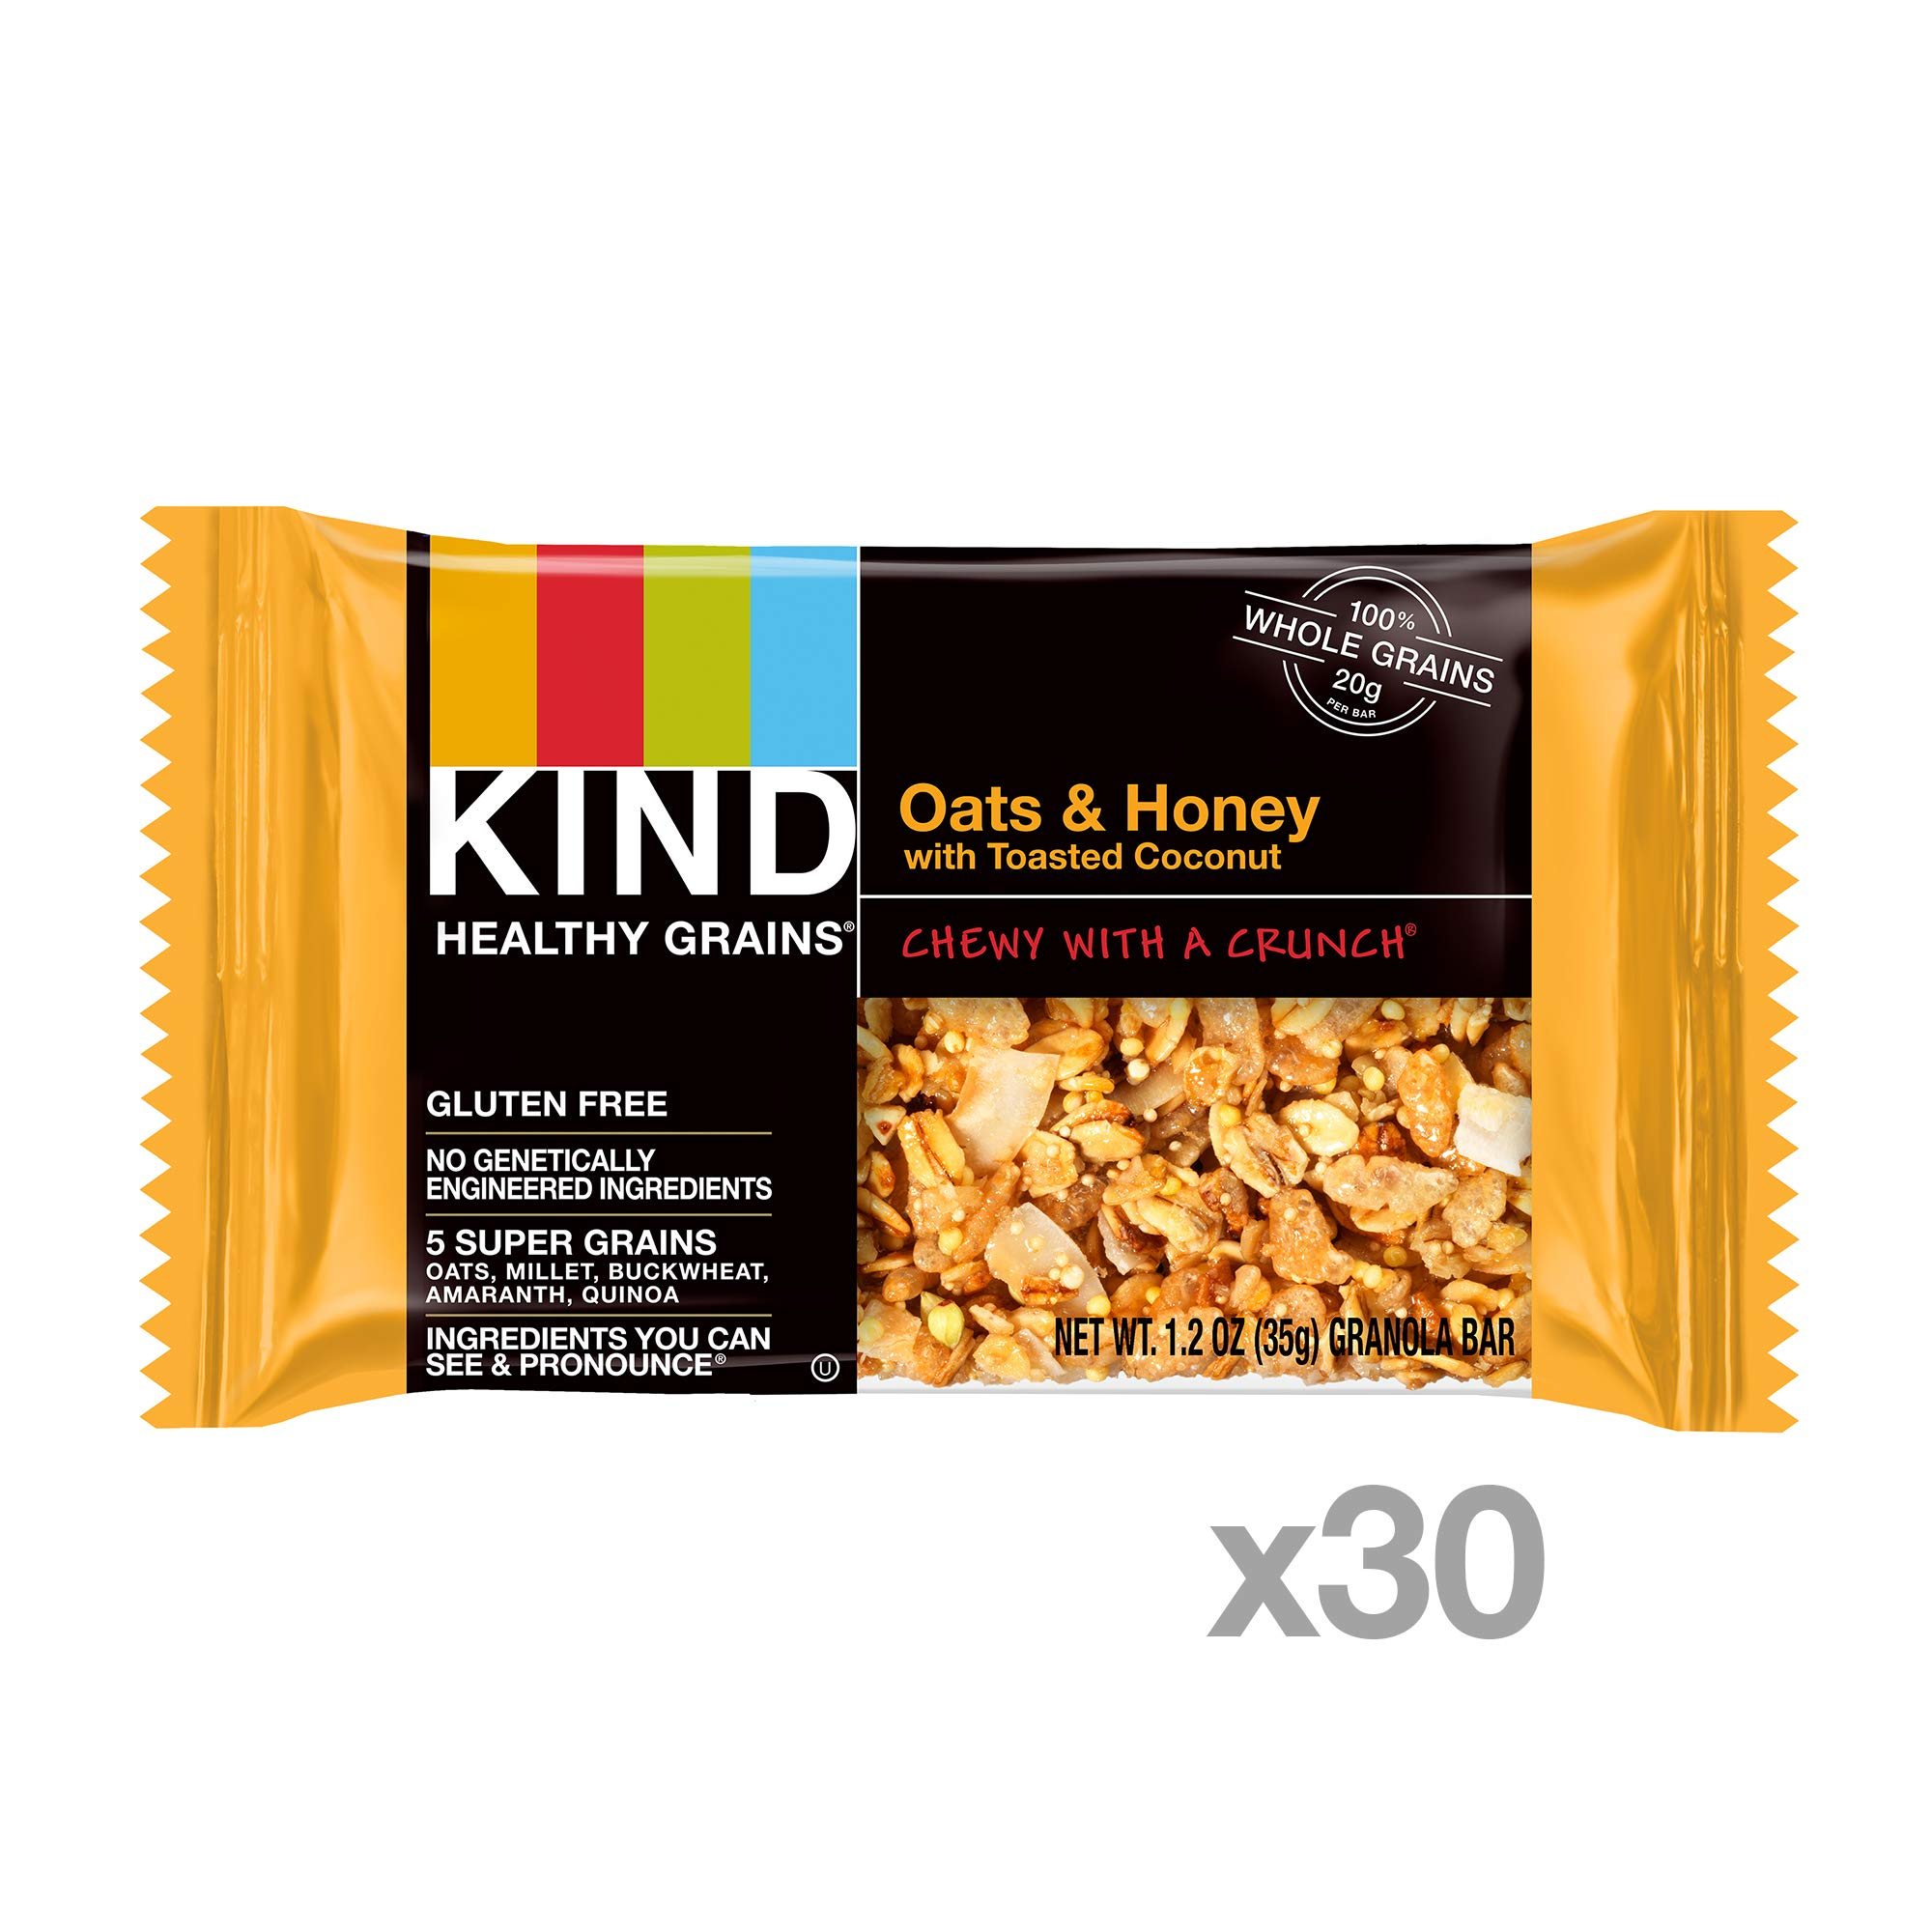 KIND Healthy Grains Granola Bars, Oats & Honey with Toasted Coconut, Gluten Free, 1.2 oz, 30 Count by KIND (Image #2)